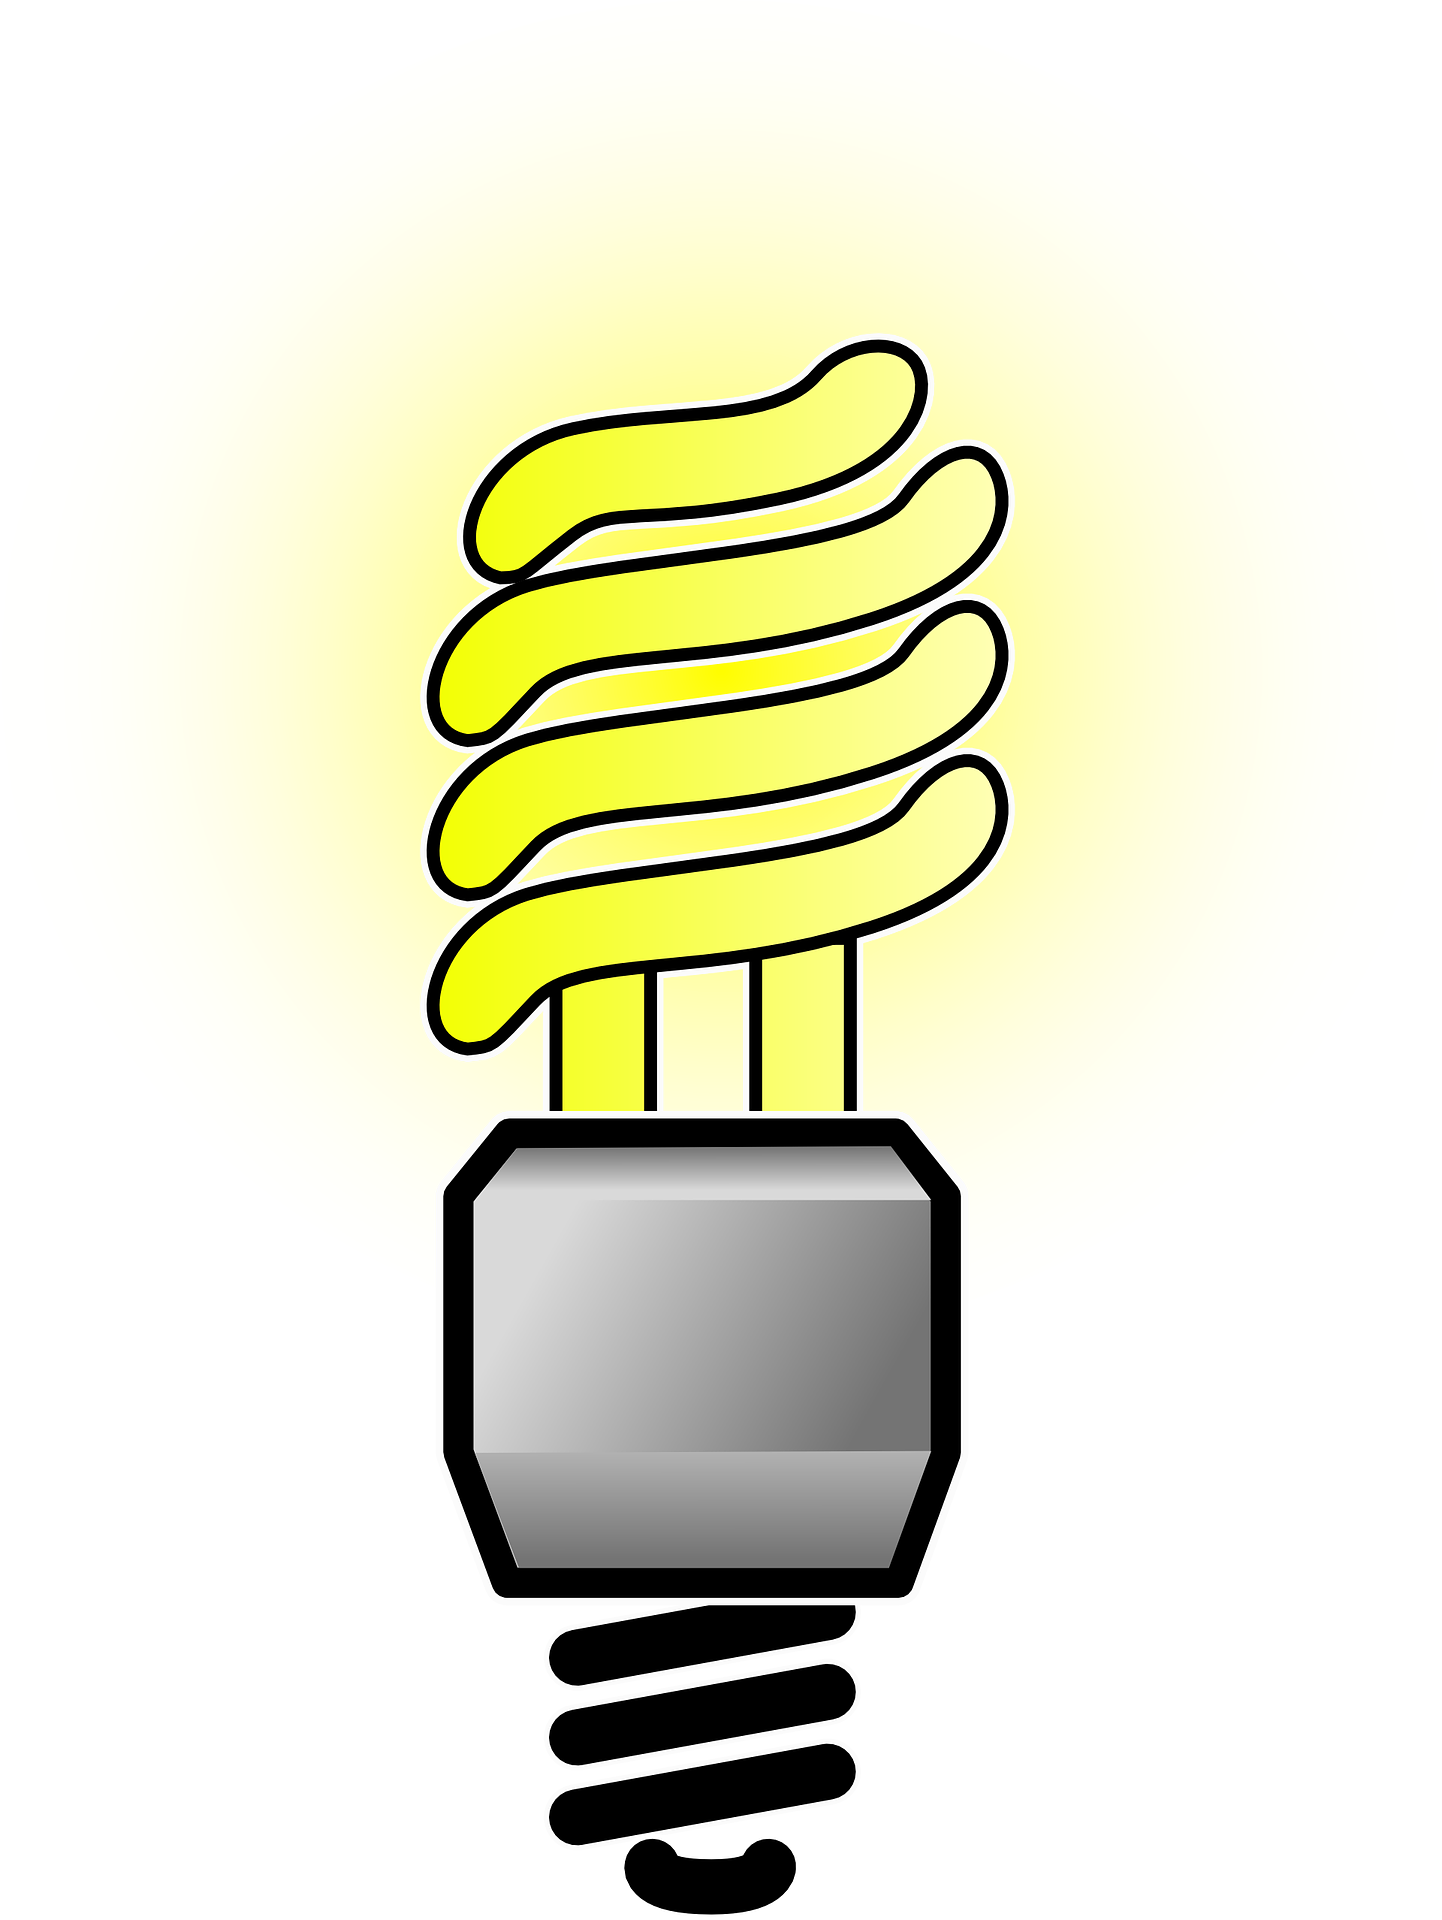 Clip at light. Incandescent bulb efficient energy